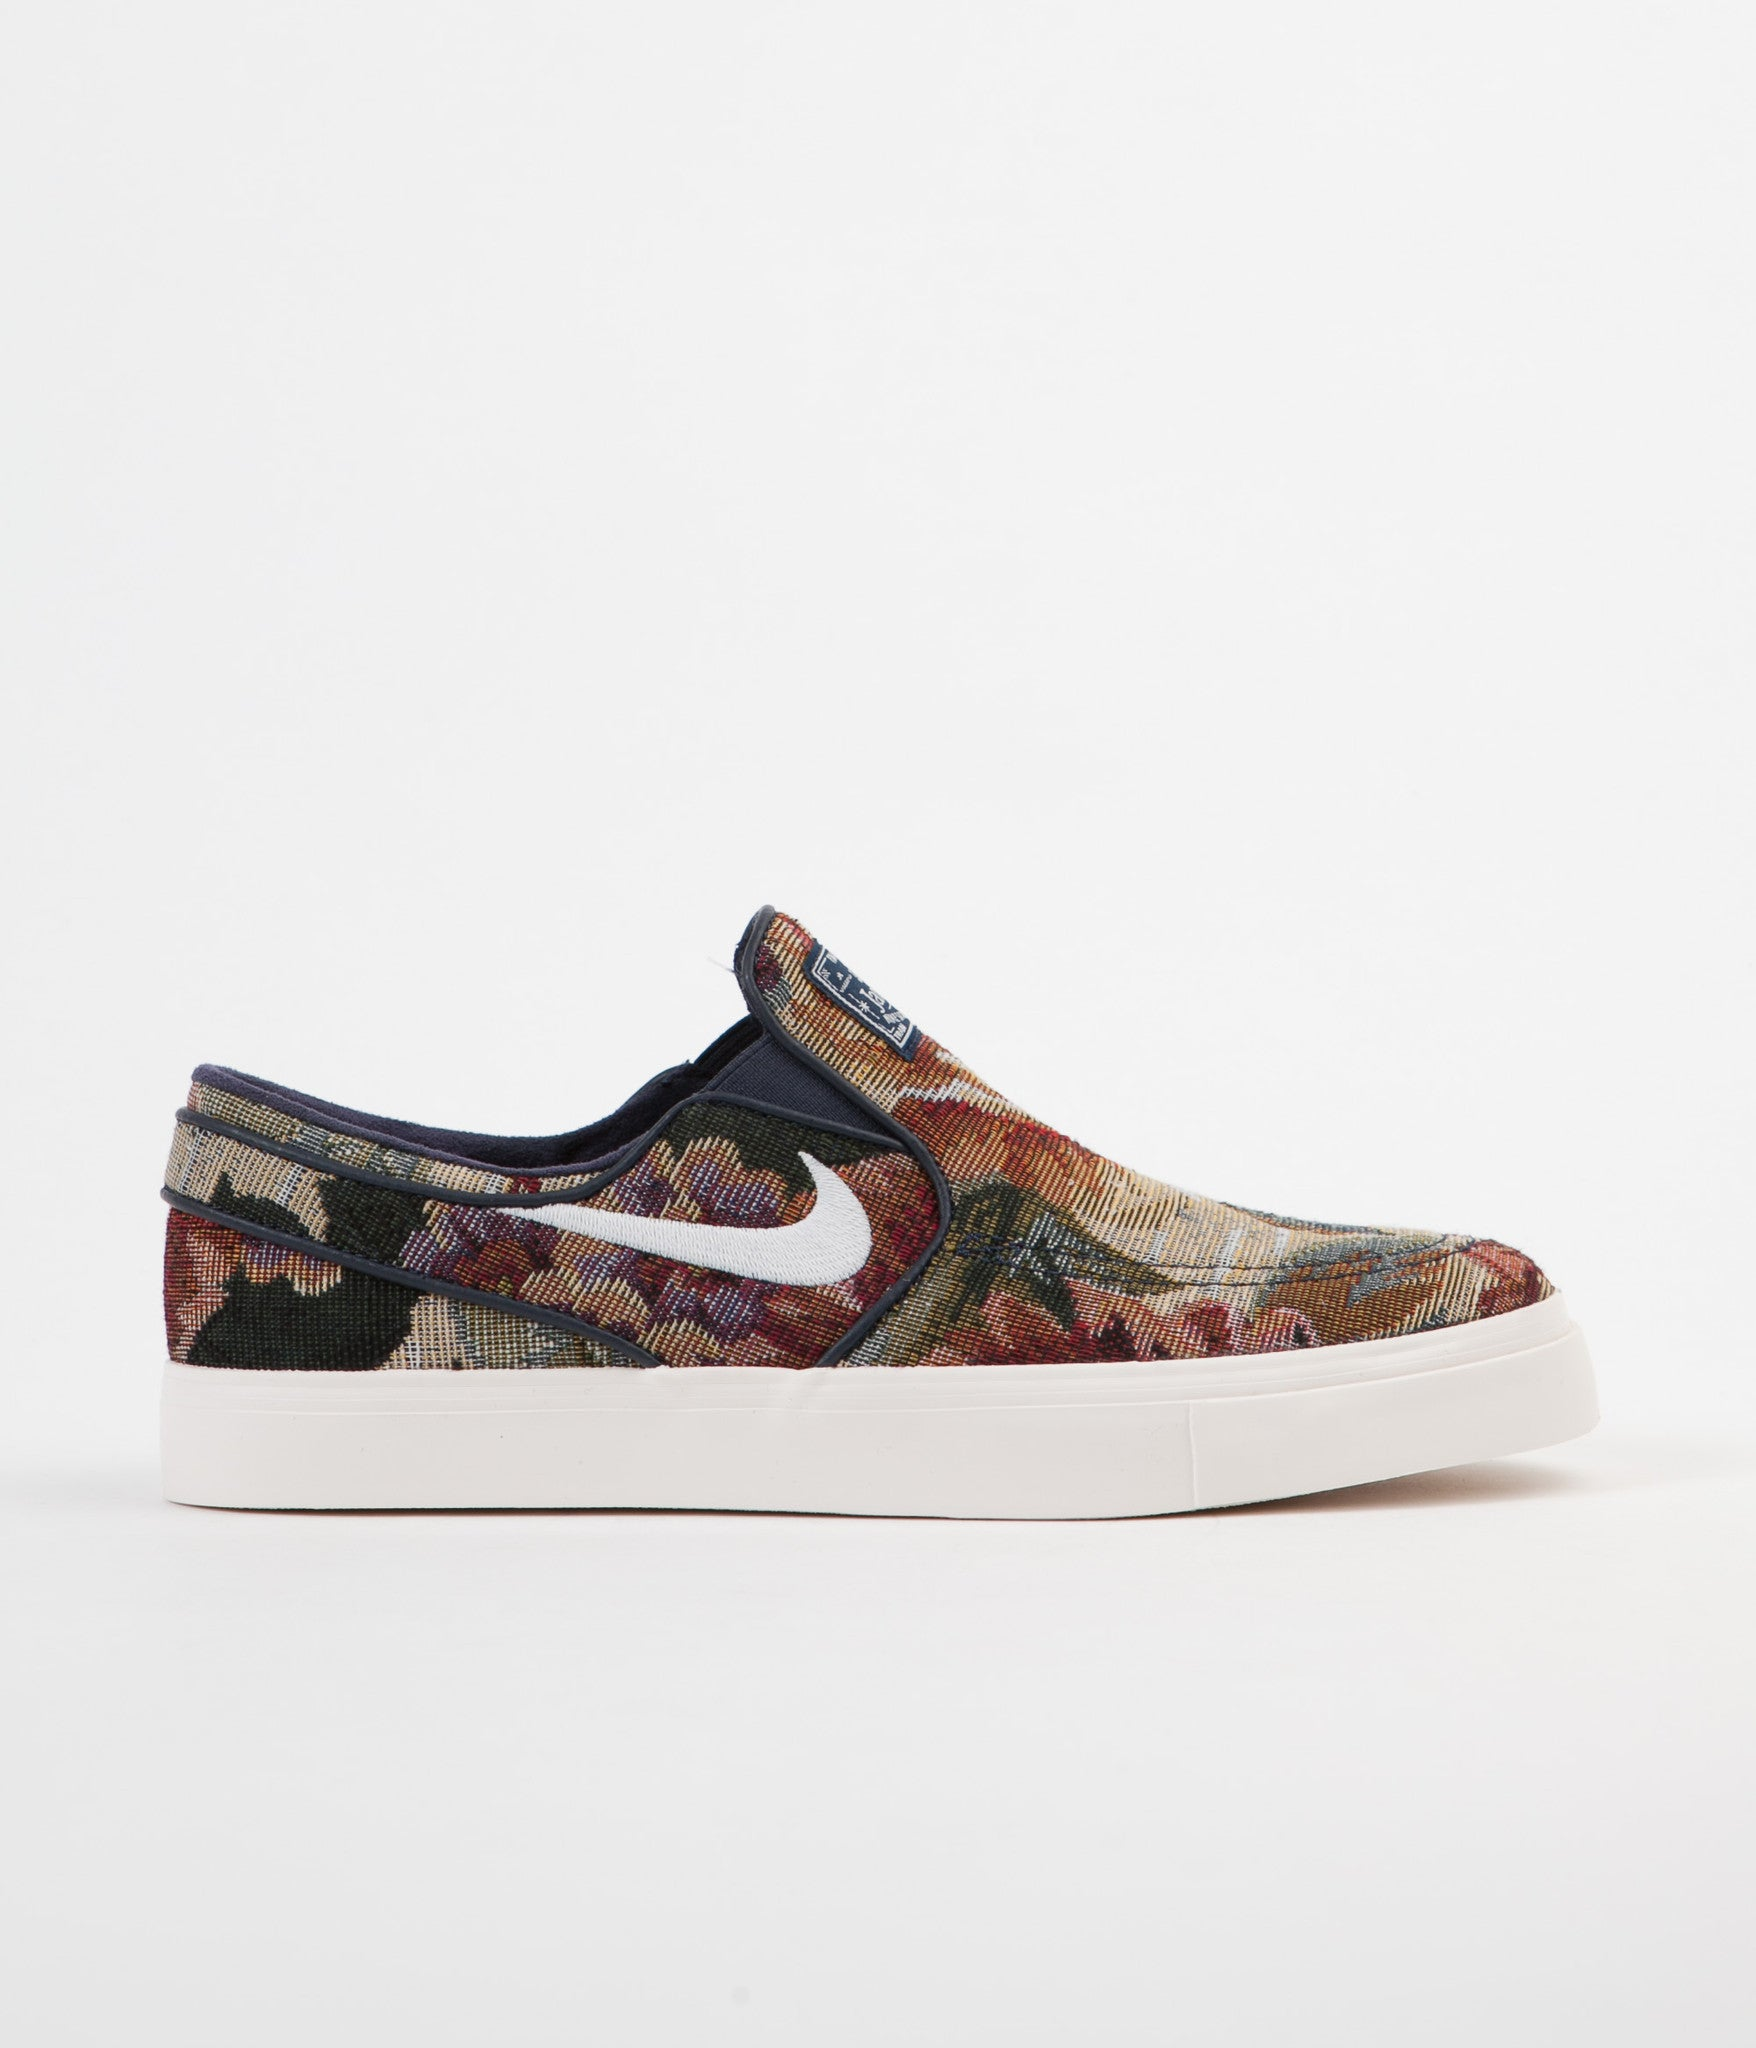 size 40 5a06e ea937 Nike SB Stefan Janoski Slip On Canvas Premium Shoes - Multi-colour   White  - Ivory - Obsidian